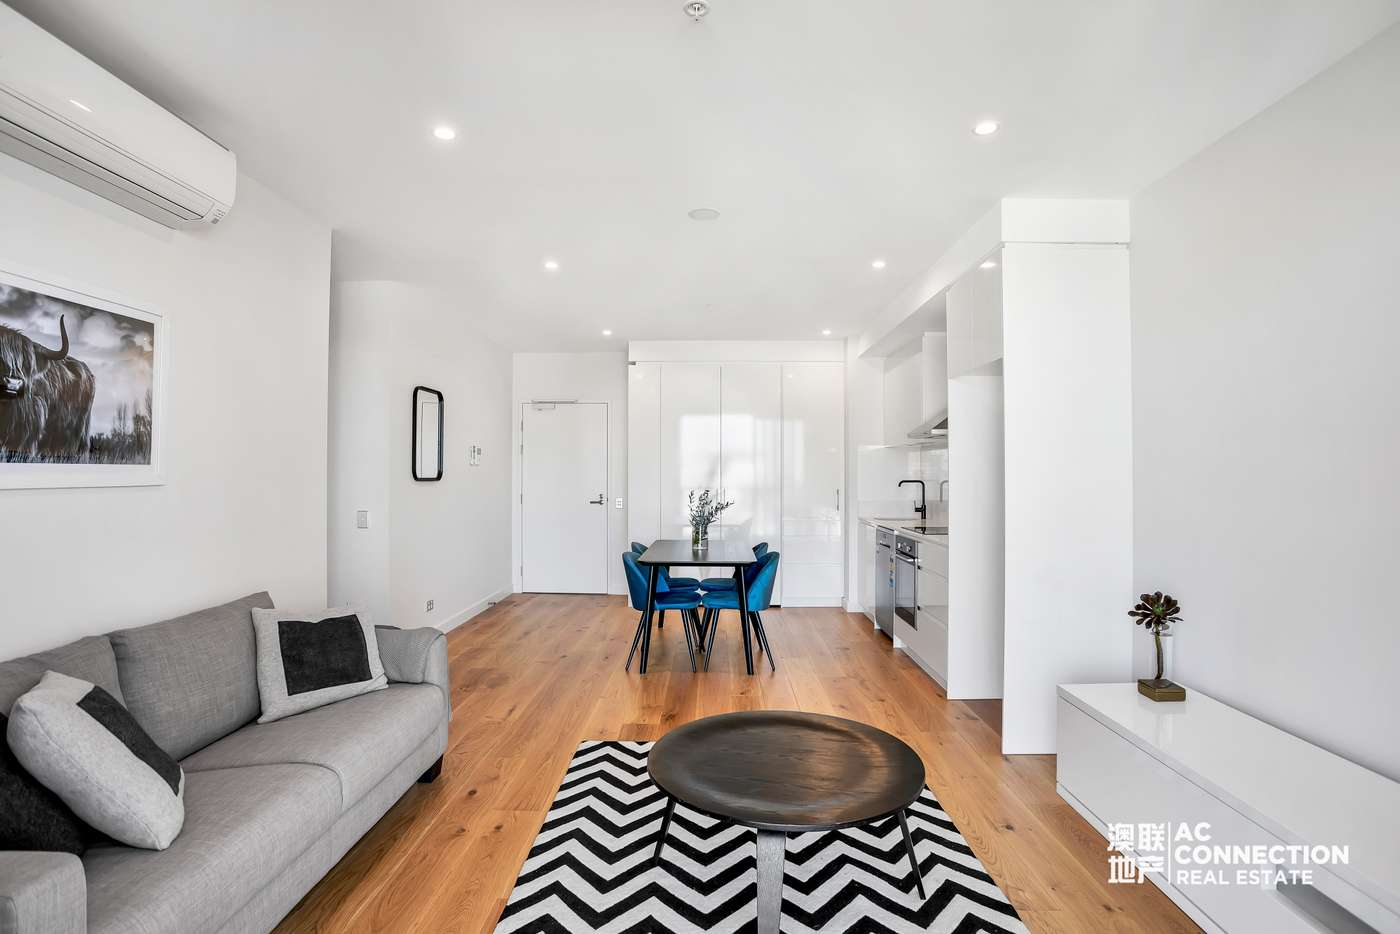 Main view of Homely apartment listing, 608/297 Pirie Street, Adelaide SA 5000